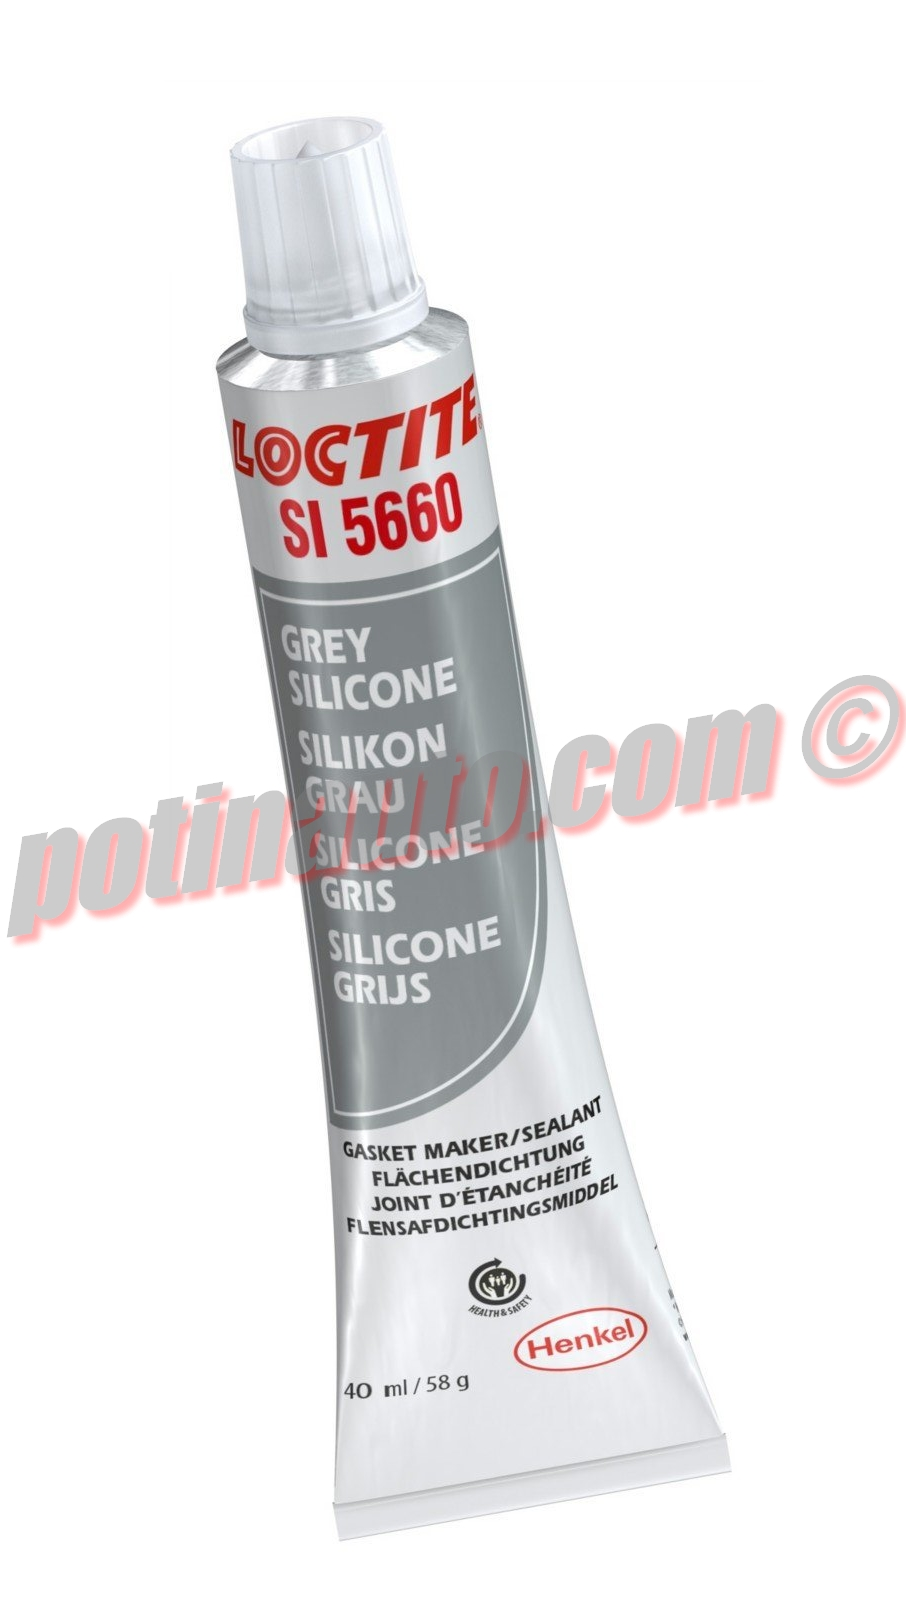 joint d 39 tanch it loctite si5660 silicone gris 40ml r f 1124089. Black Bedroom Furniture Sets. Home Design Ideas